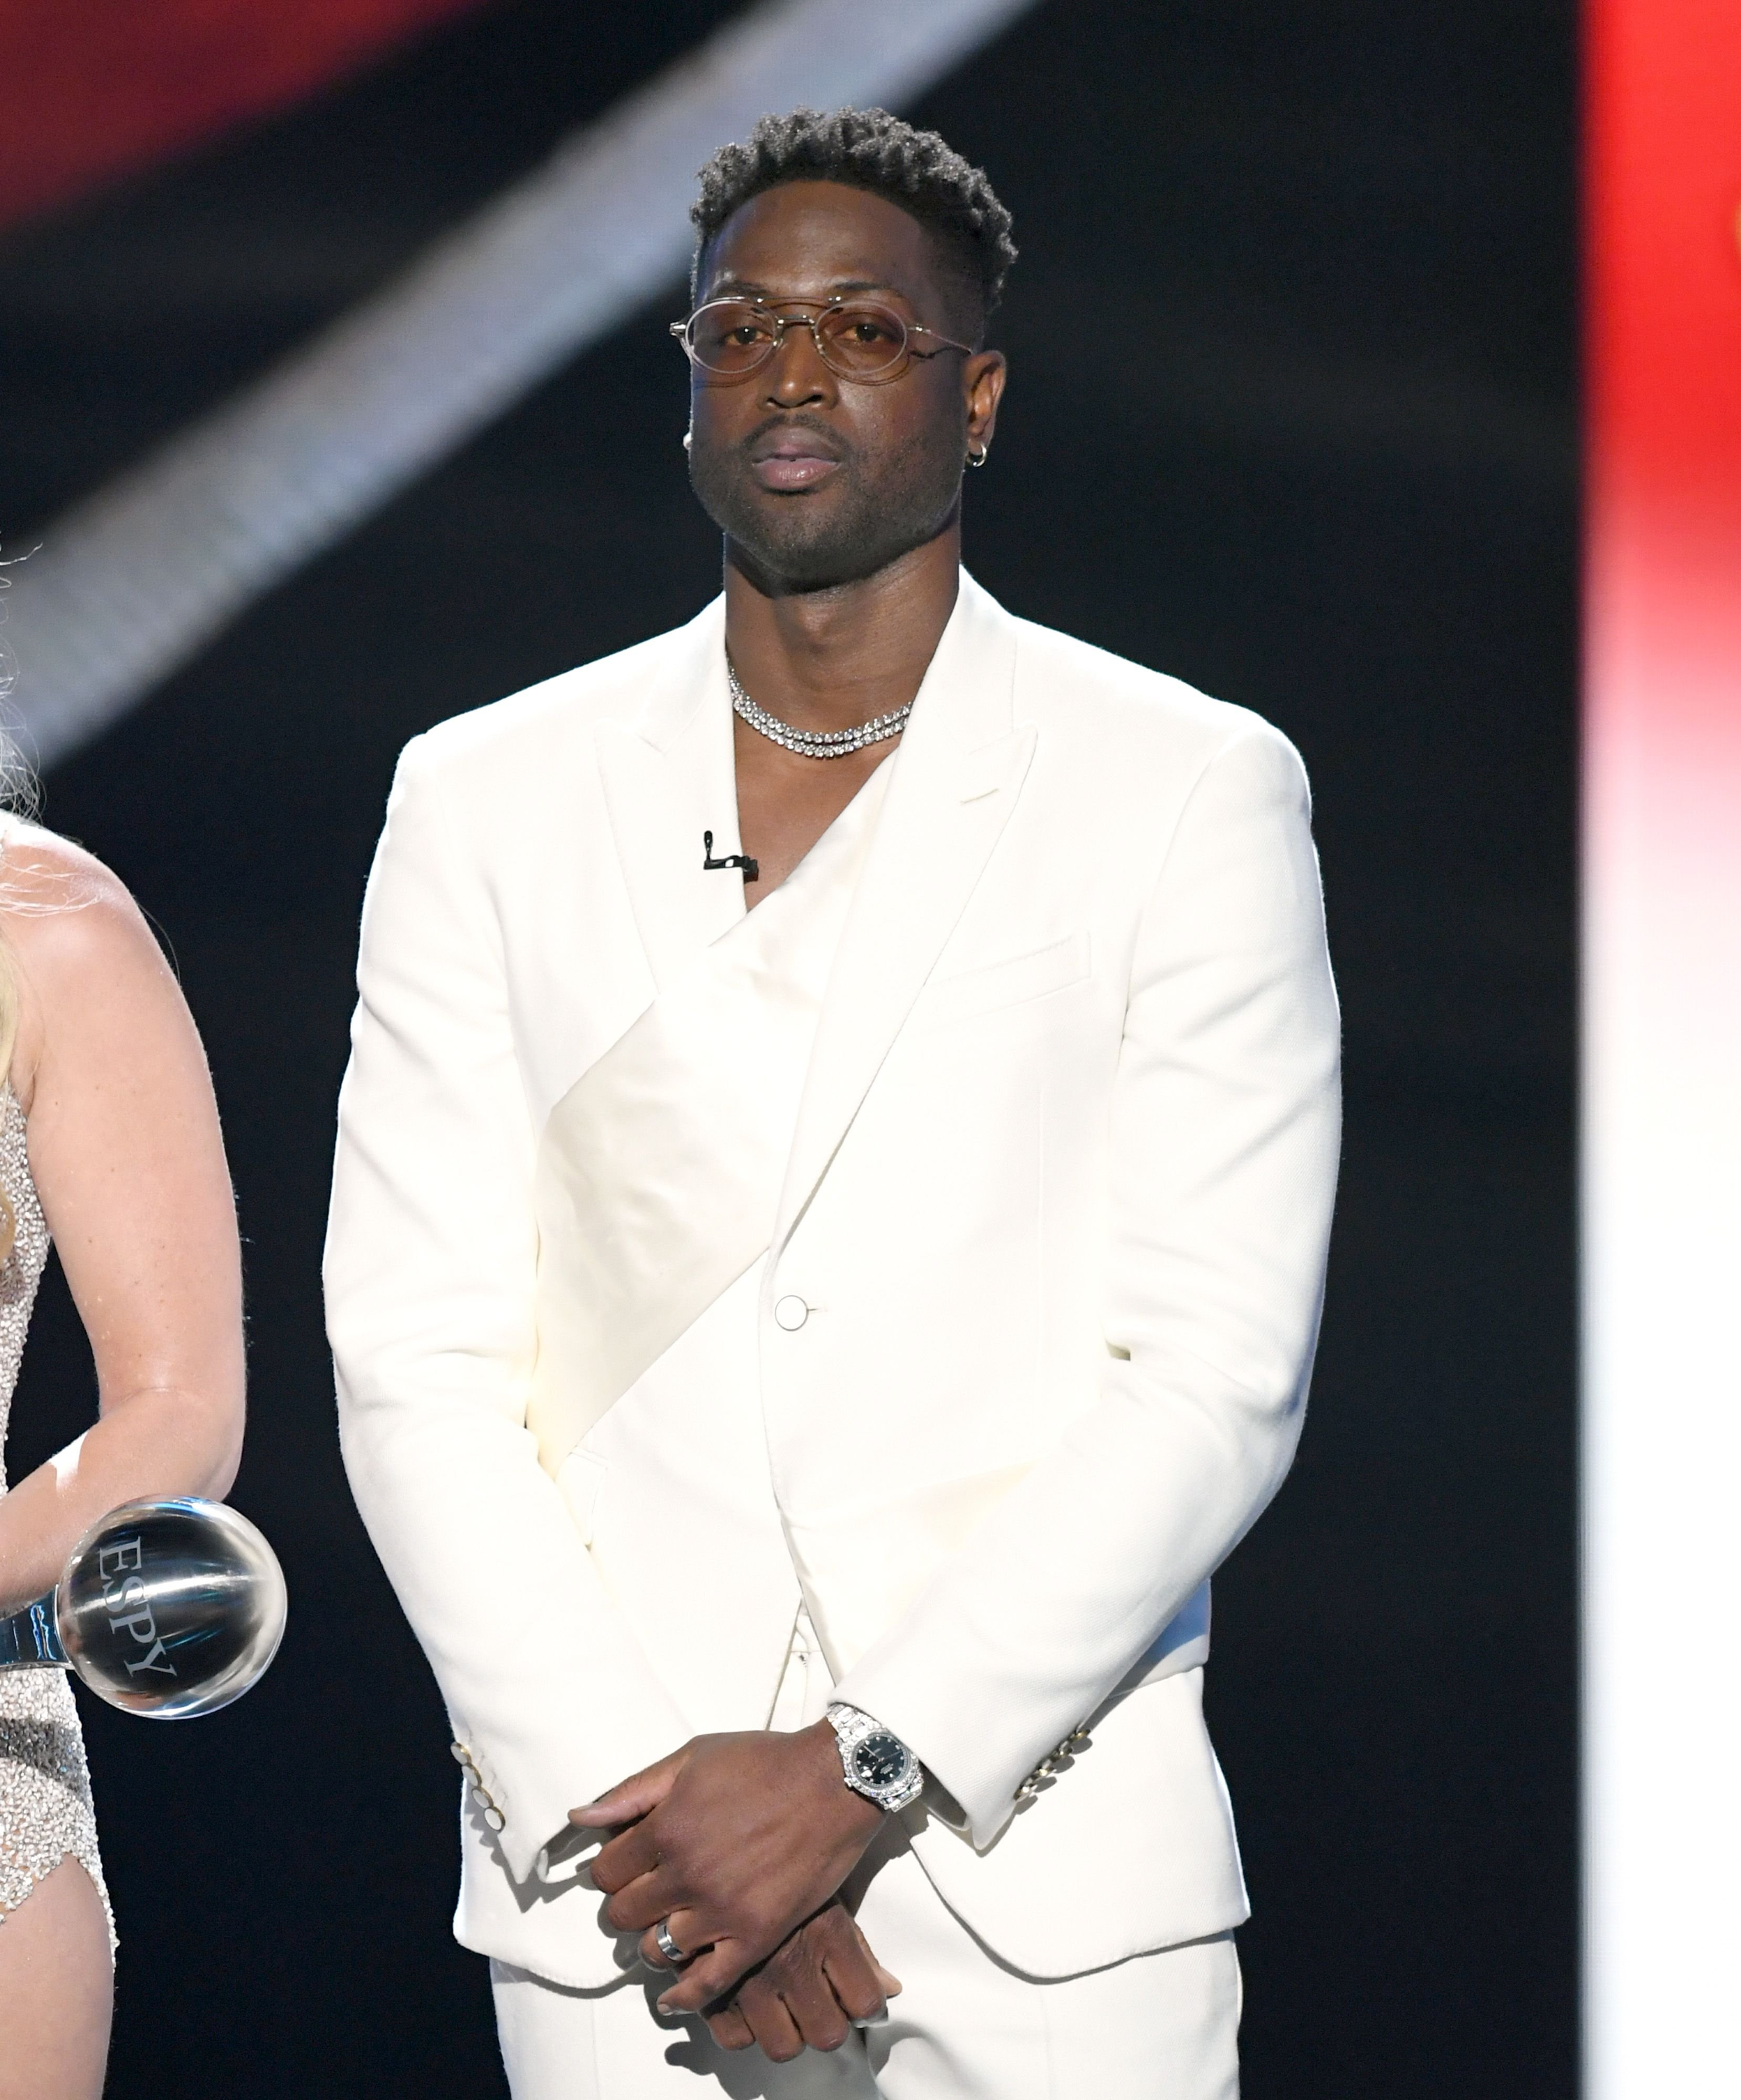 Dwyane Wade during The 2019 ESPYs at Microsoft Theater on July 10, 2019 in Los Angeles, California.   Source: Getty Images